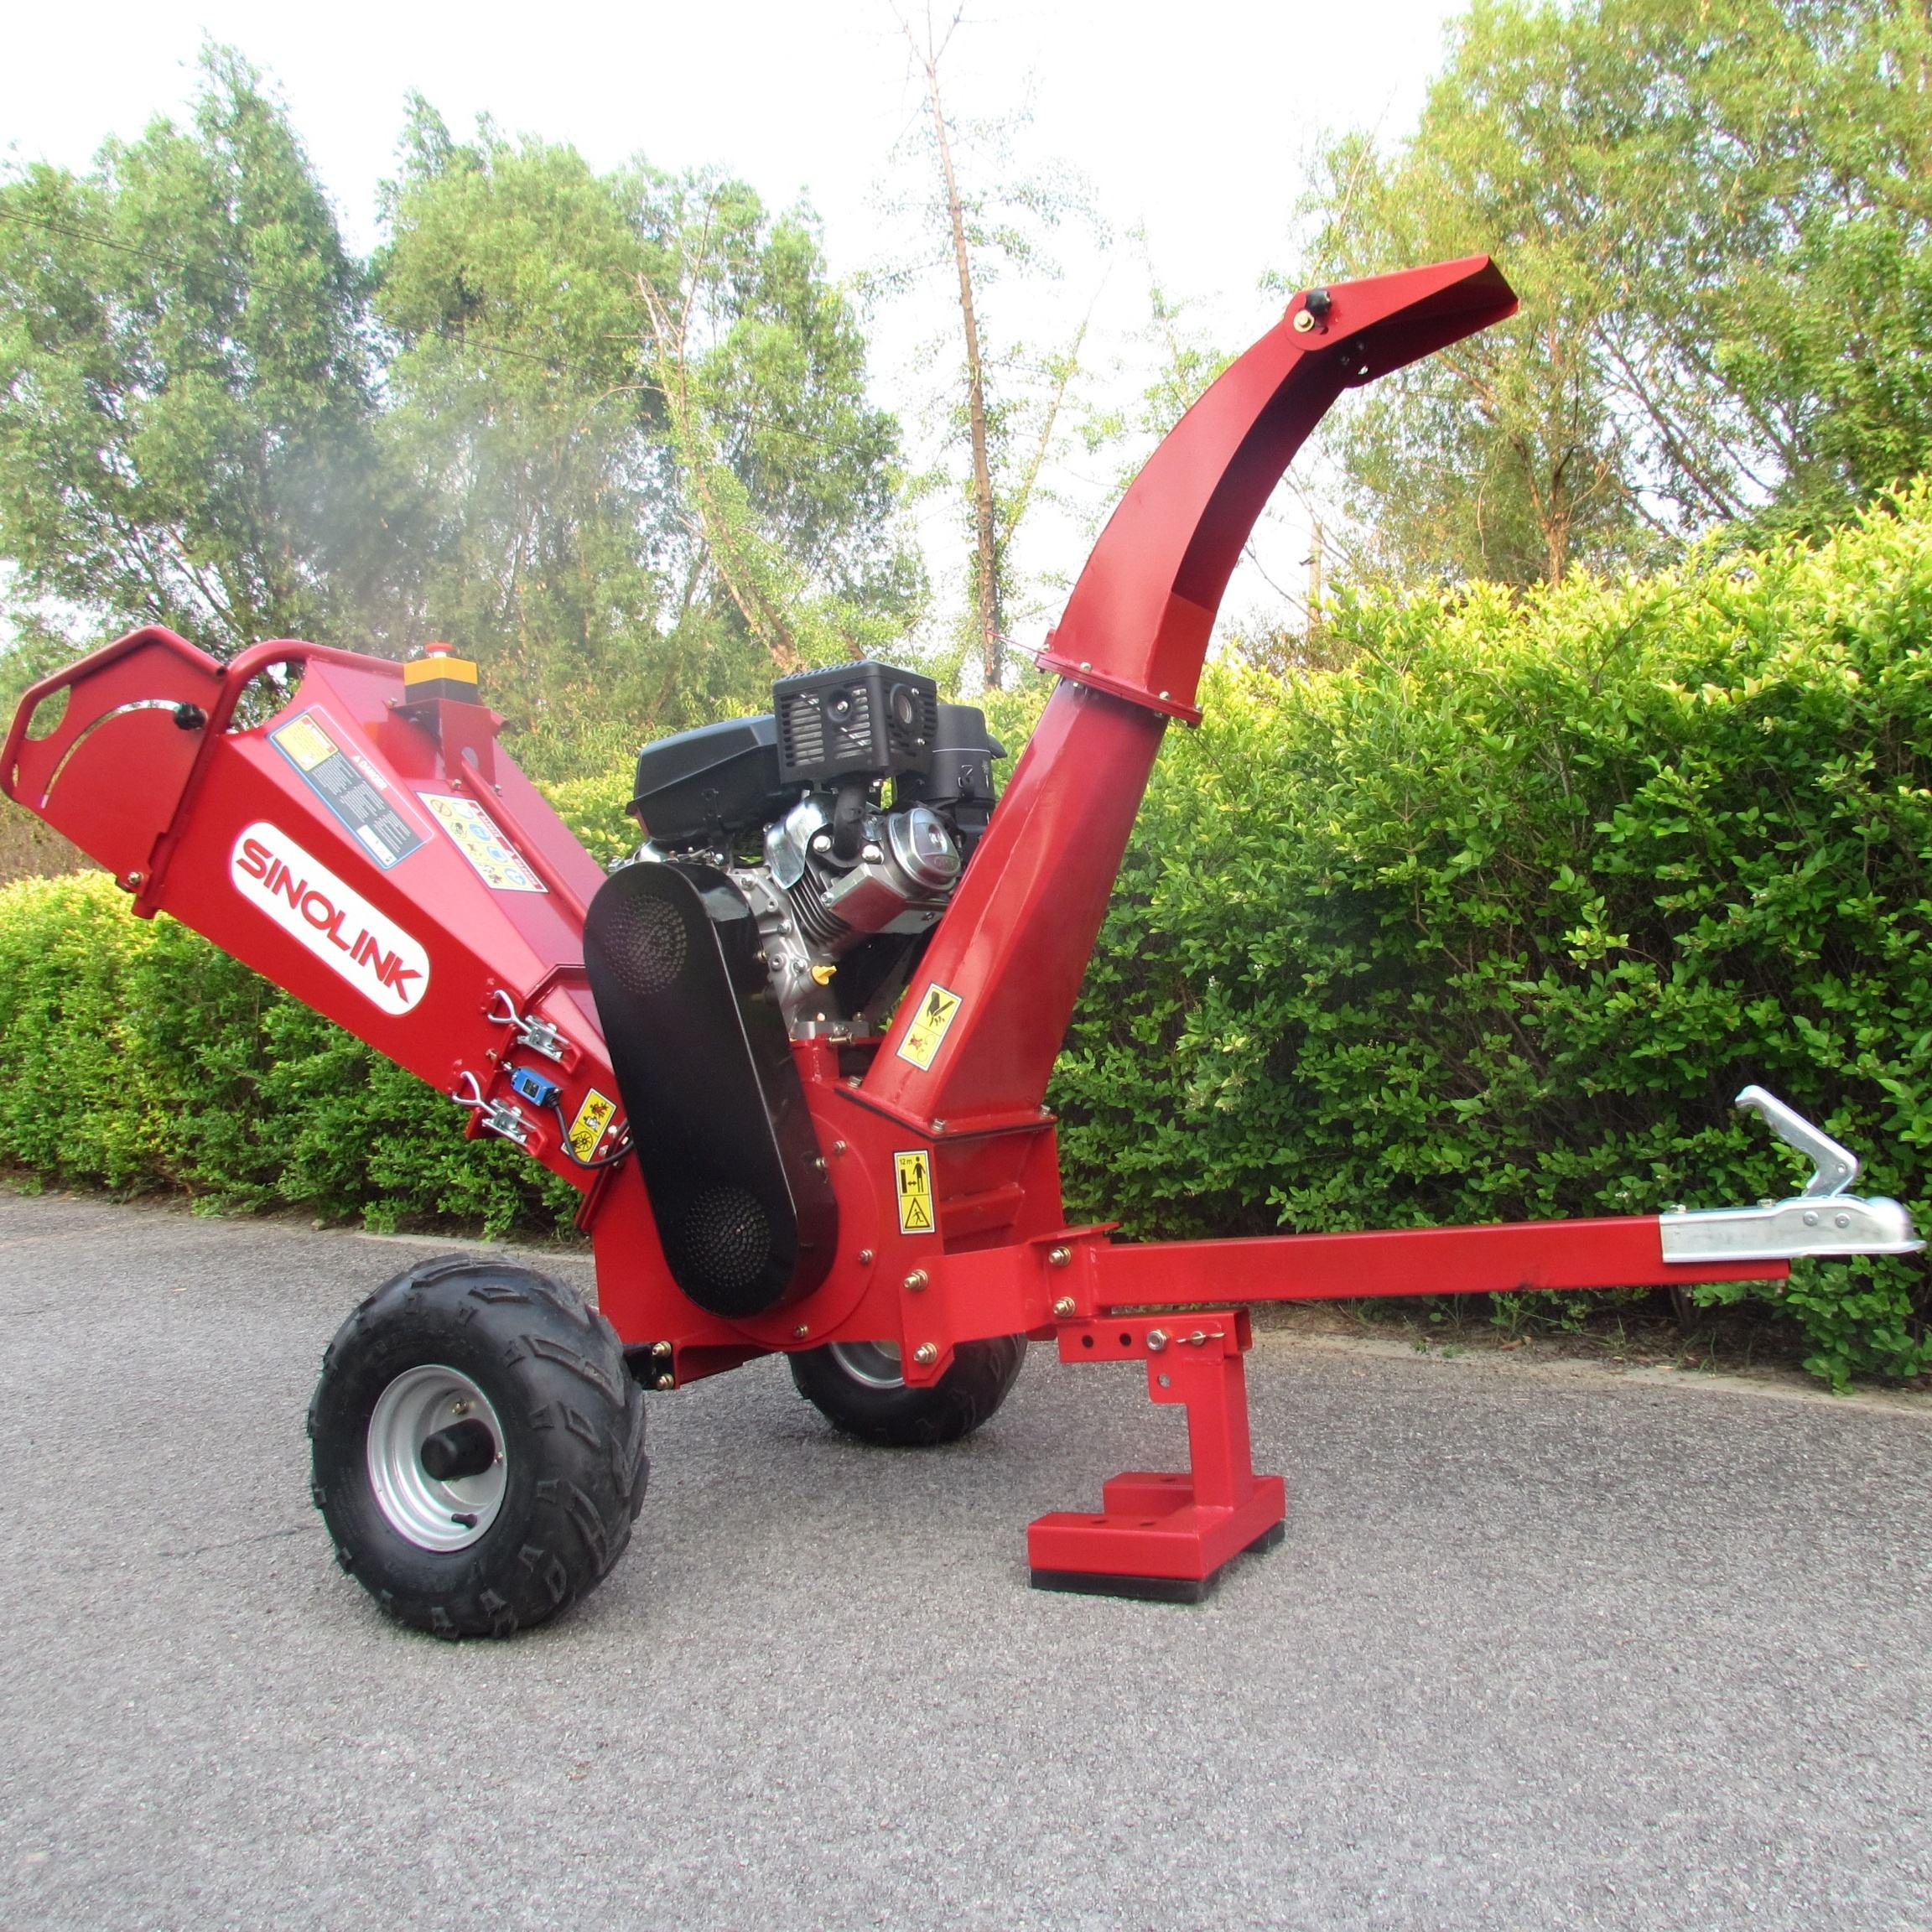 15hp Petrol Engine Electric Start 120mm Chipping Capacity Wood Chipper Shredder Pto Wood Chipper Shredder Machine